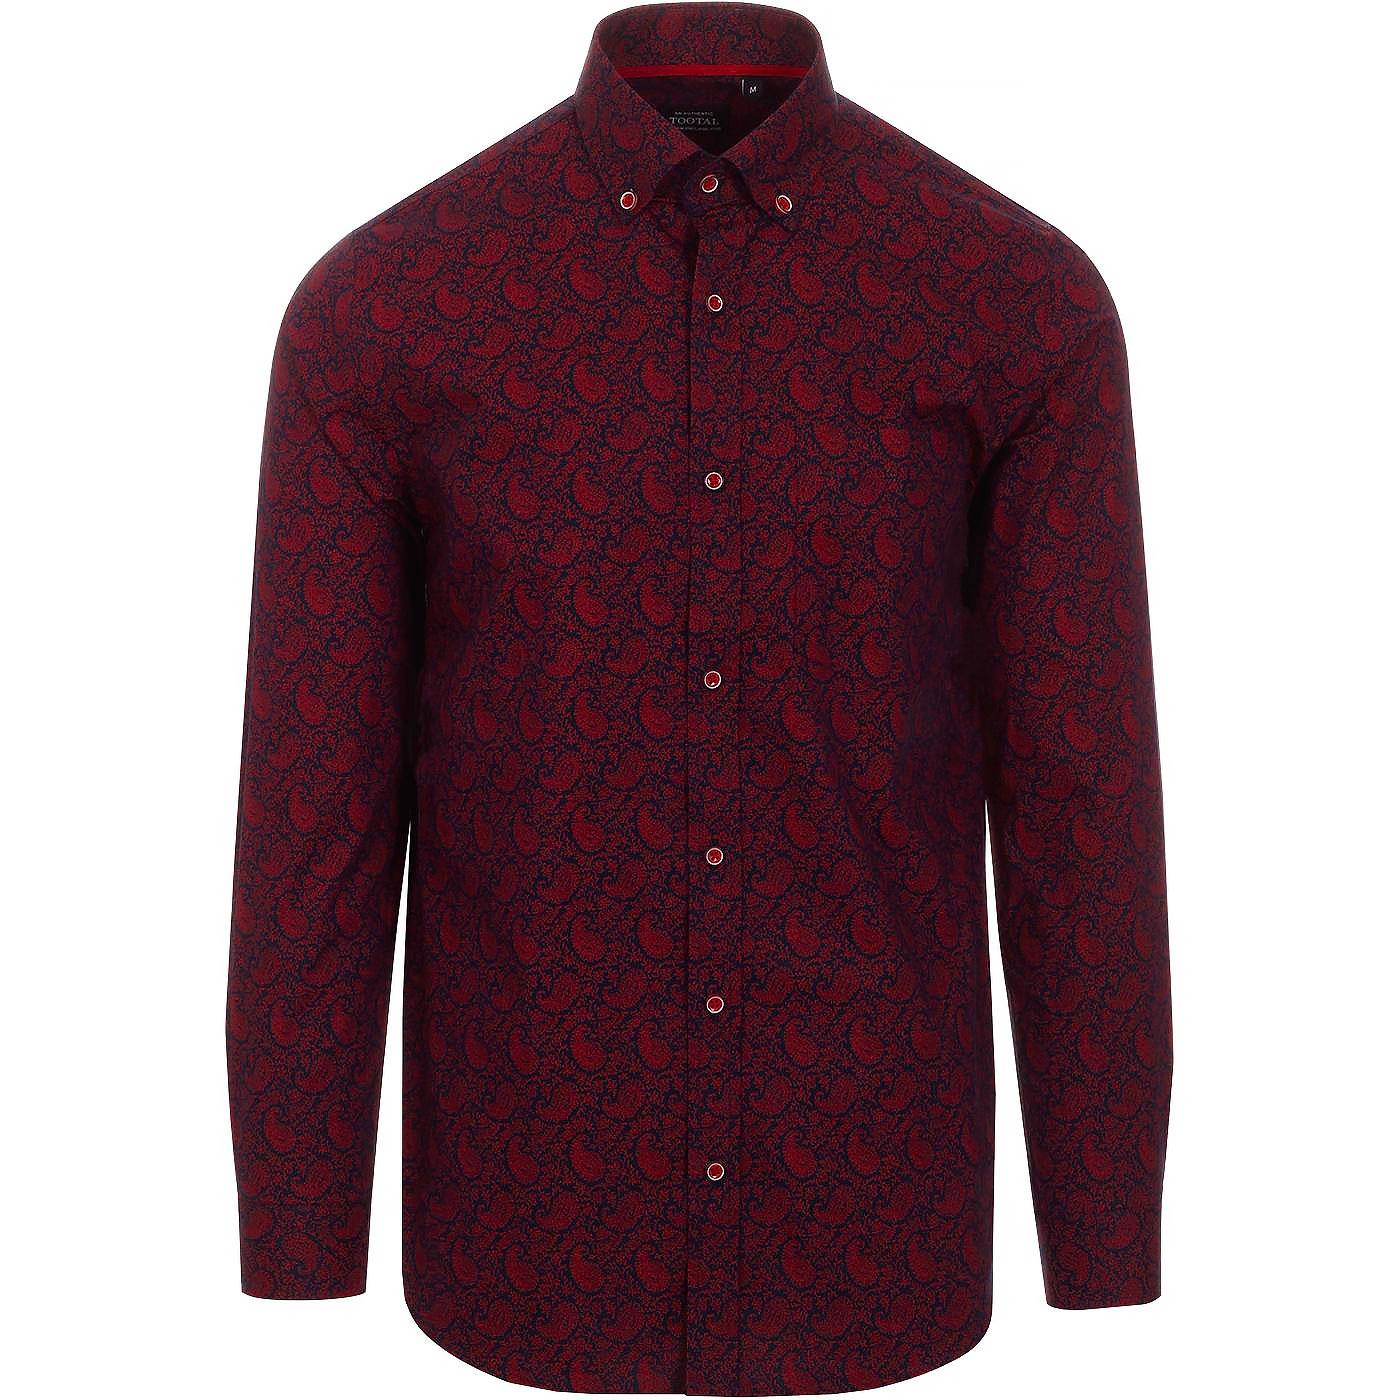 TOOTAL Retro Mod Decorative Paisley Shirt (Navy)